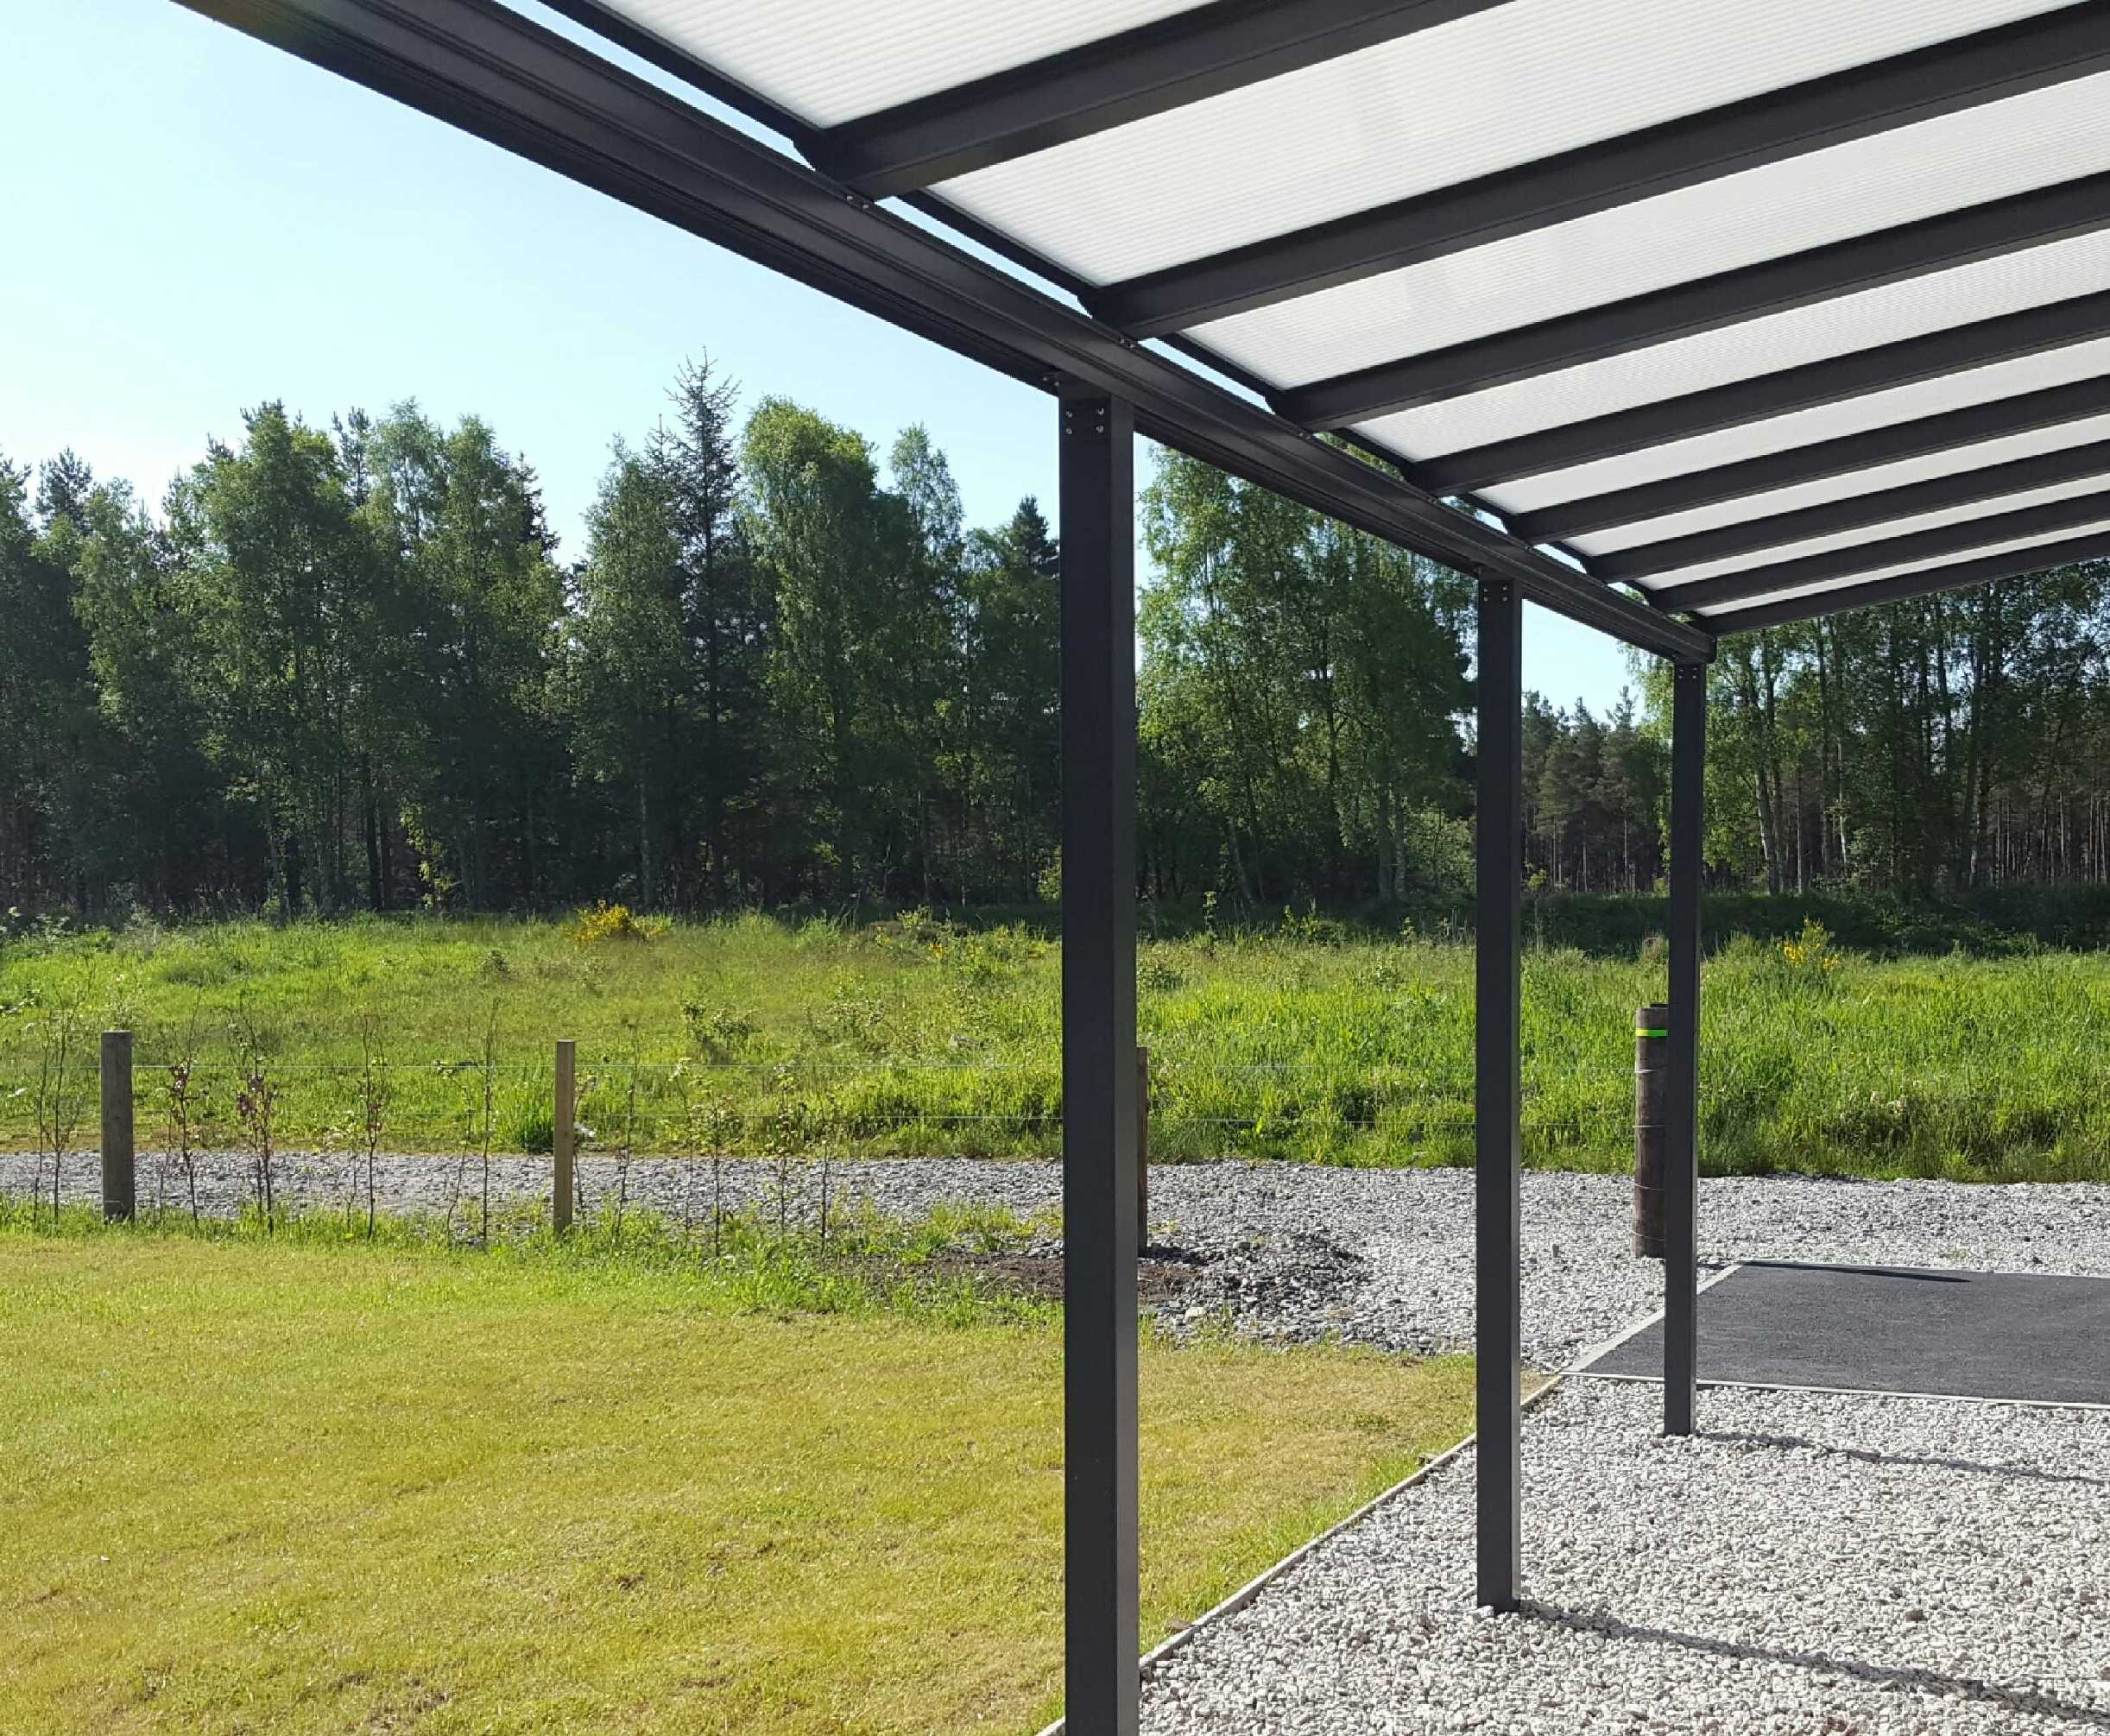 Omega Smart Lean-To Canopy, Anthracite Grey, UNGLAZED for 6mm Glazing - 6.3m (W) x 1.5m (P), (4) Supporting Posts